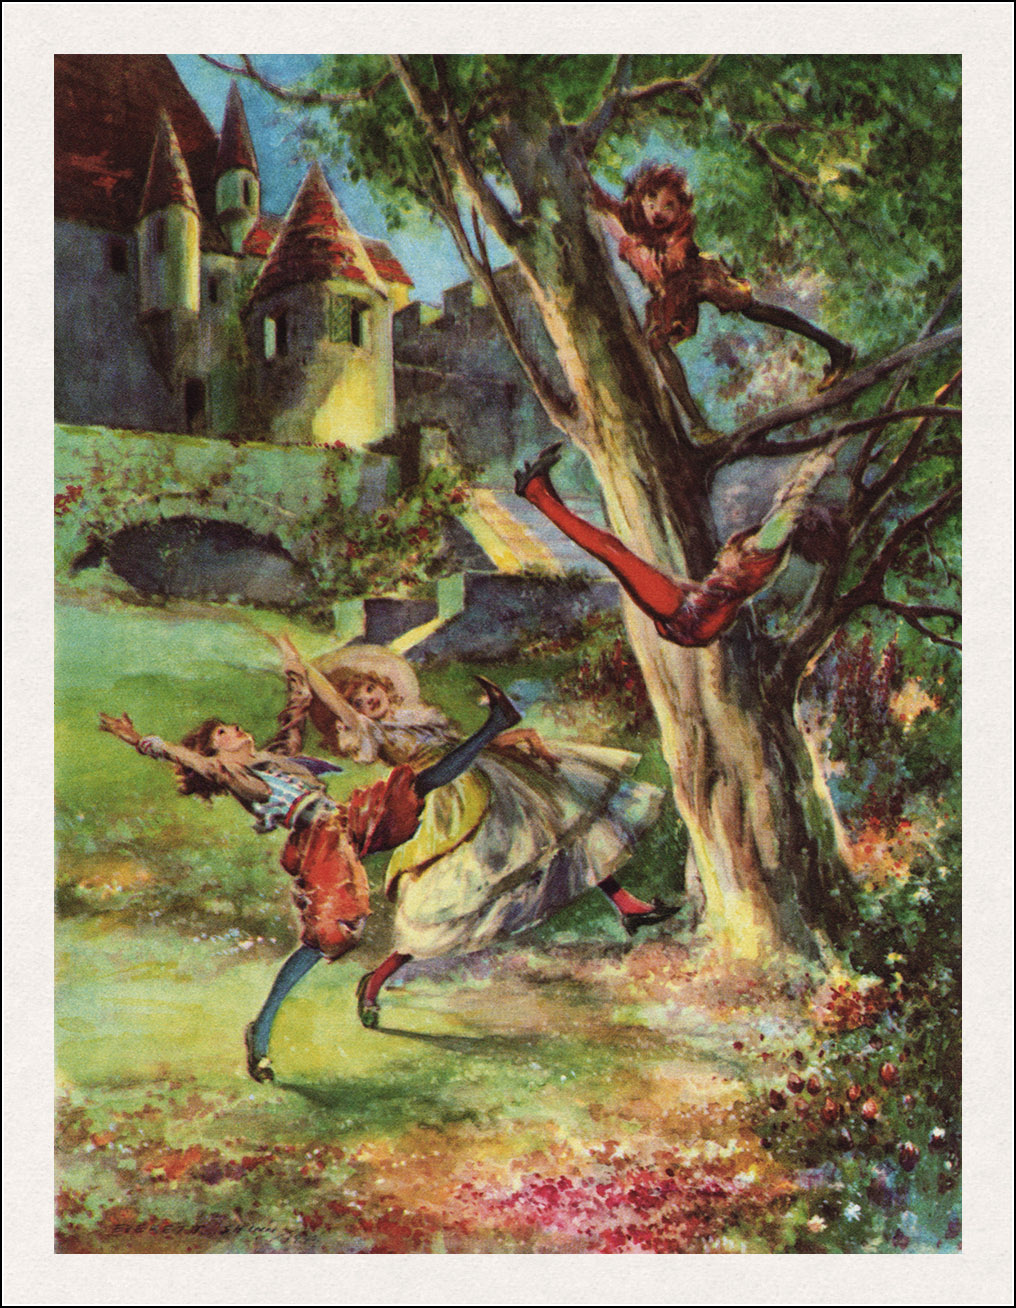 Everett Shinn, The happy prince and other tales by Oscar Wilde